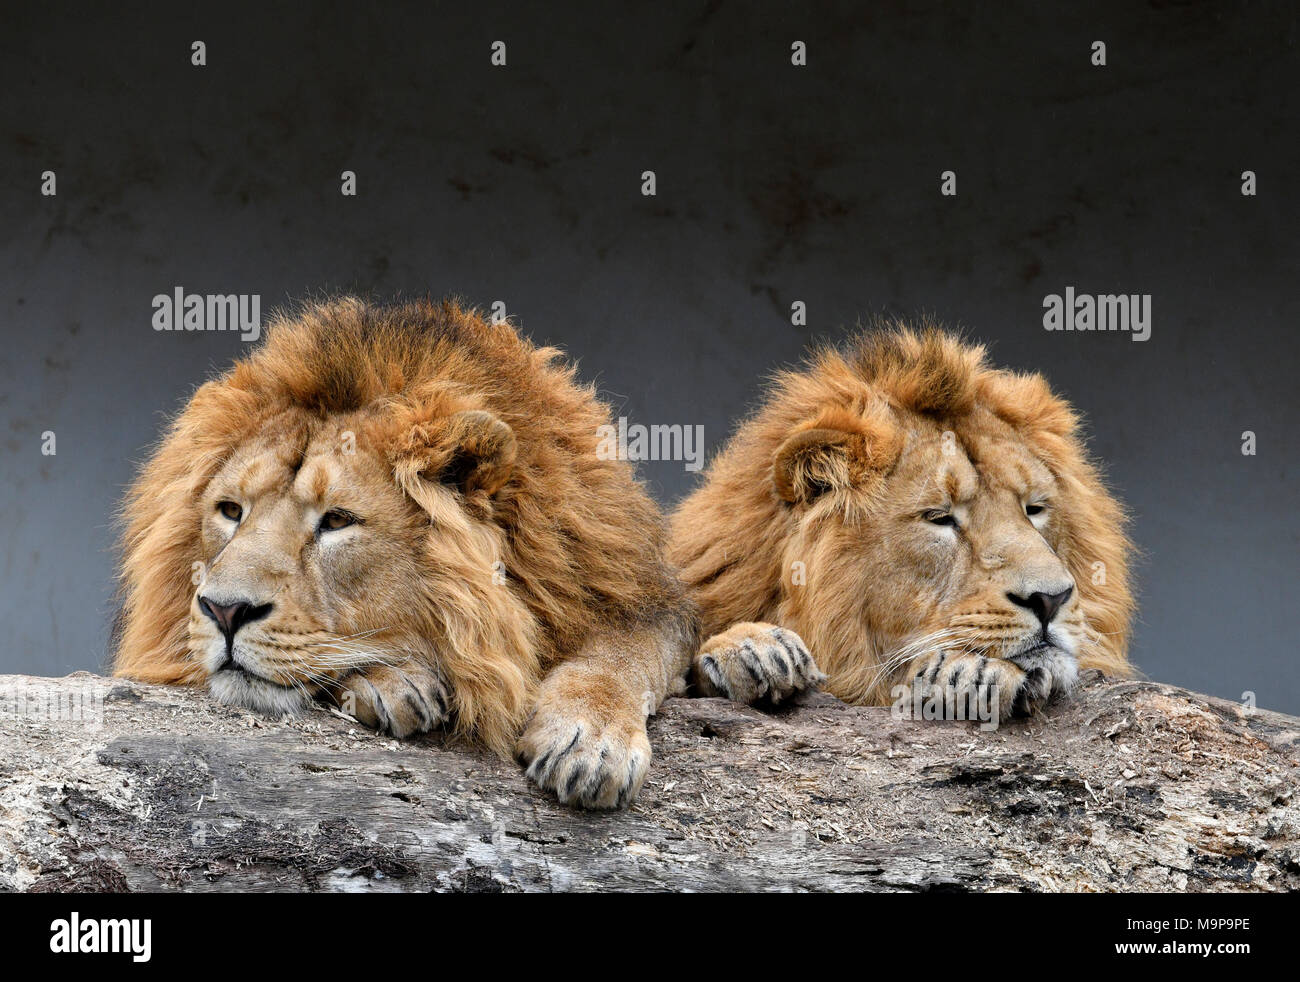 Asiatic Lions (Panthera leo persica), two males napping side by side, animal portrait, captive - Stock Image